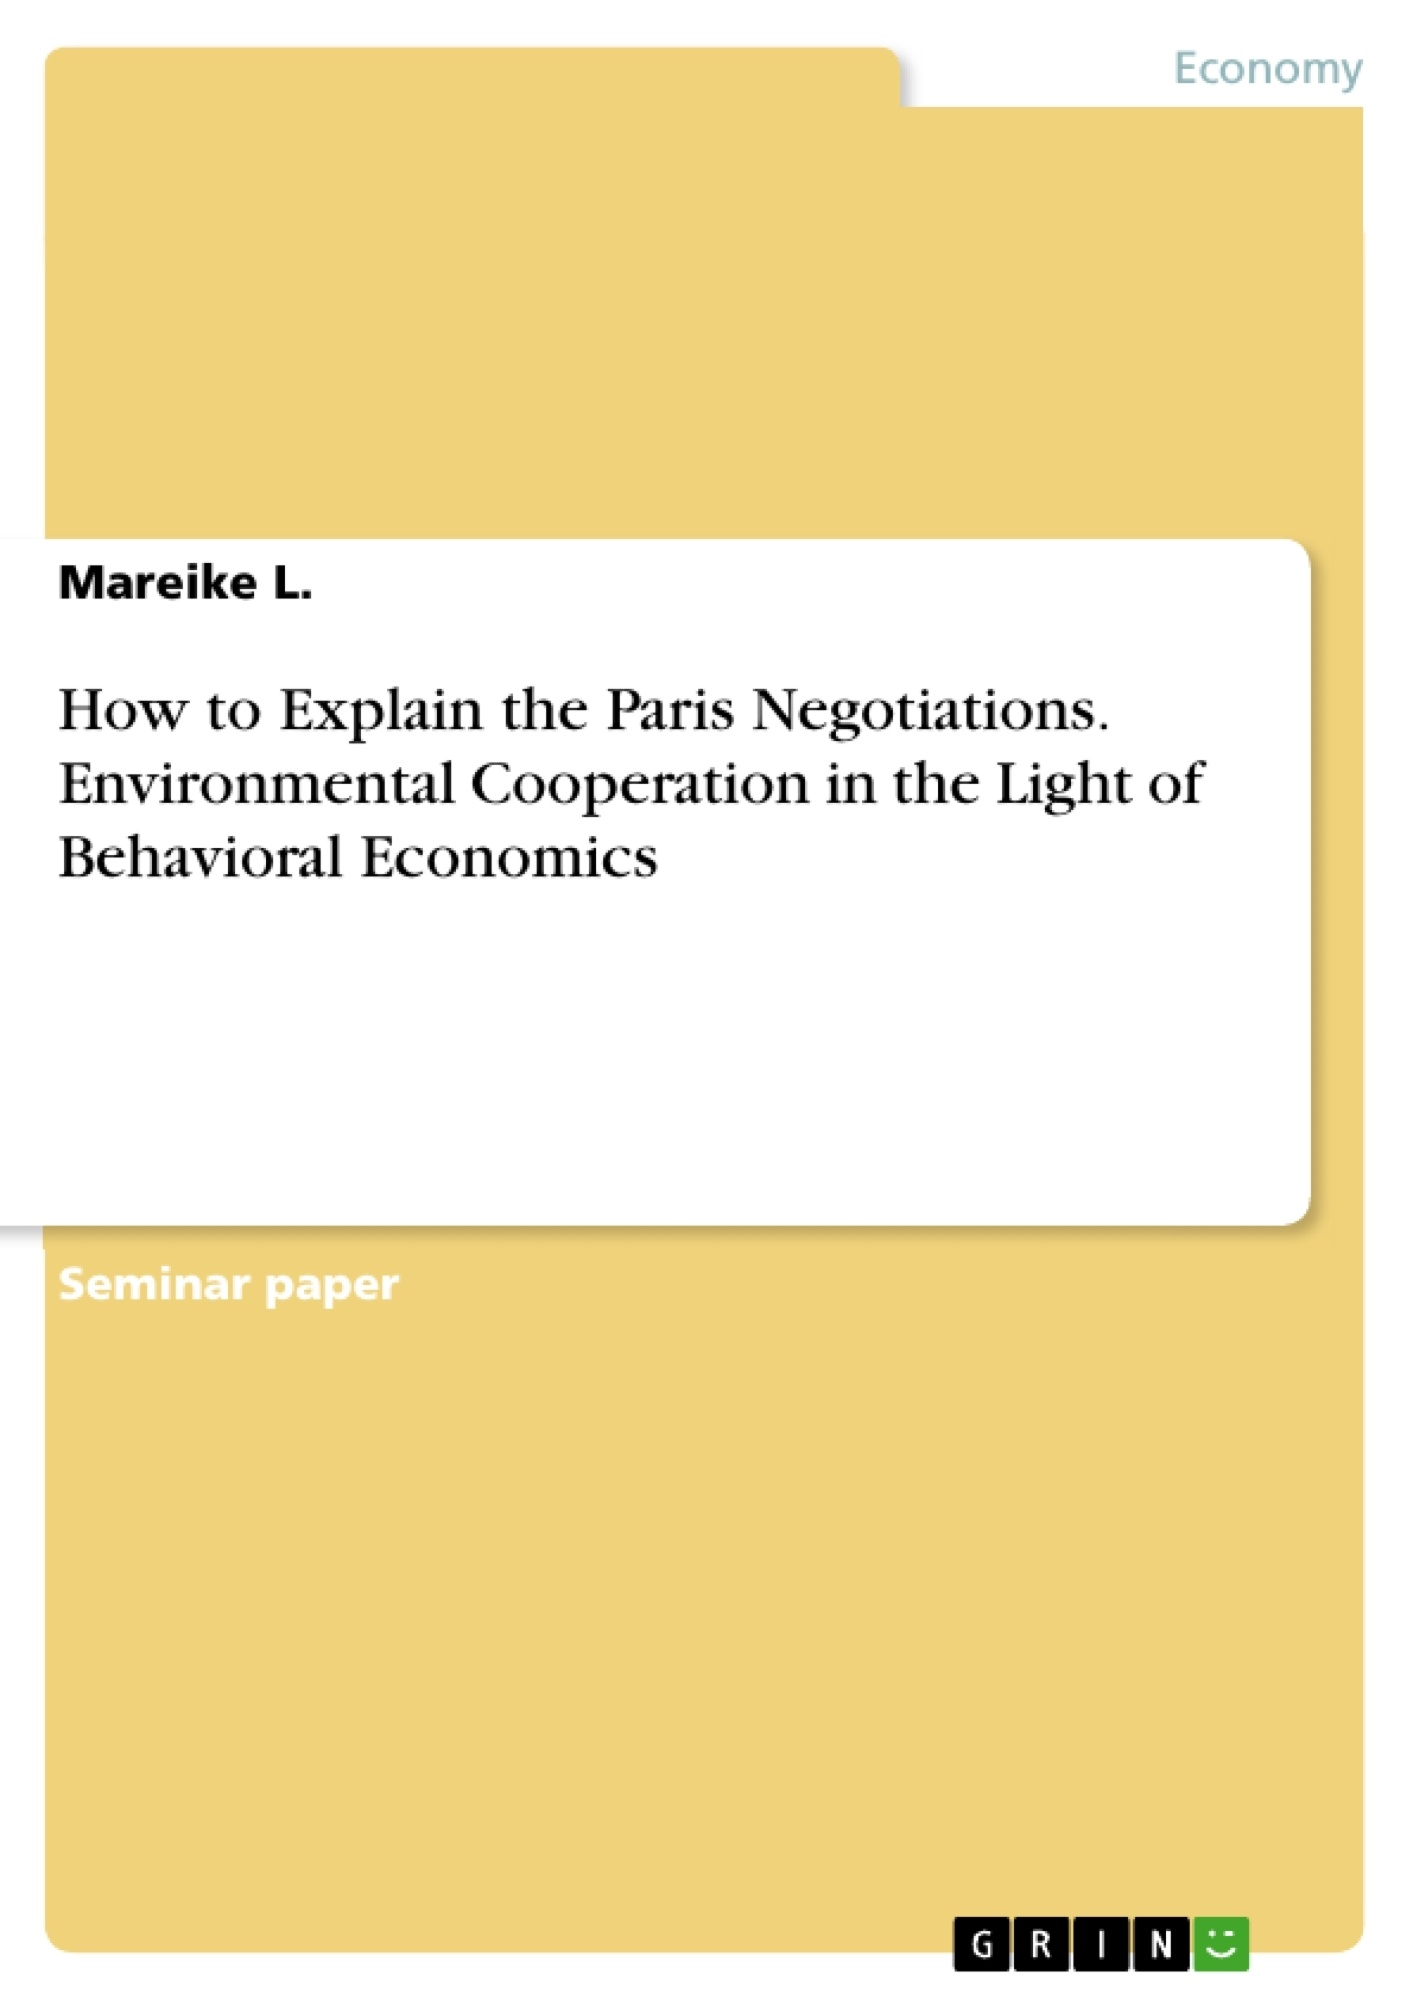 Title: How to Explain the Paris Negotiations. Environmental Cooperation in the Light of Behavioral Economics